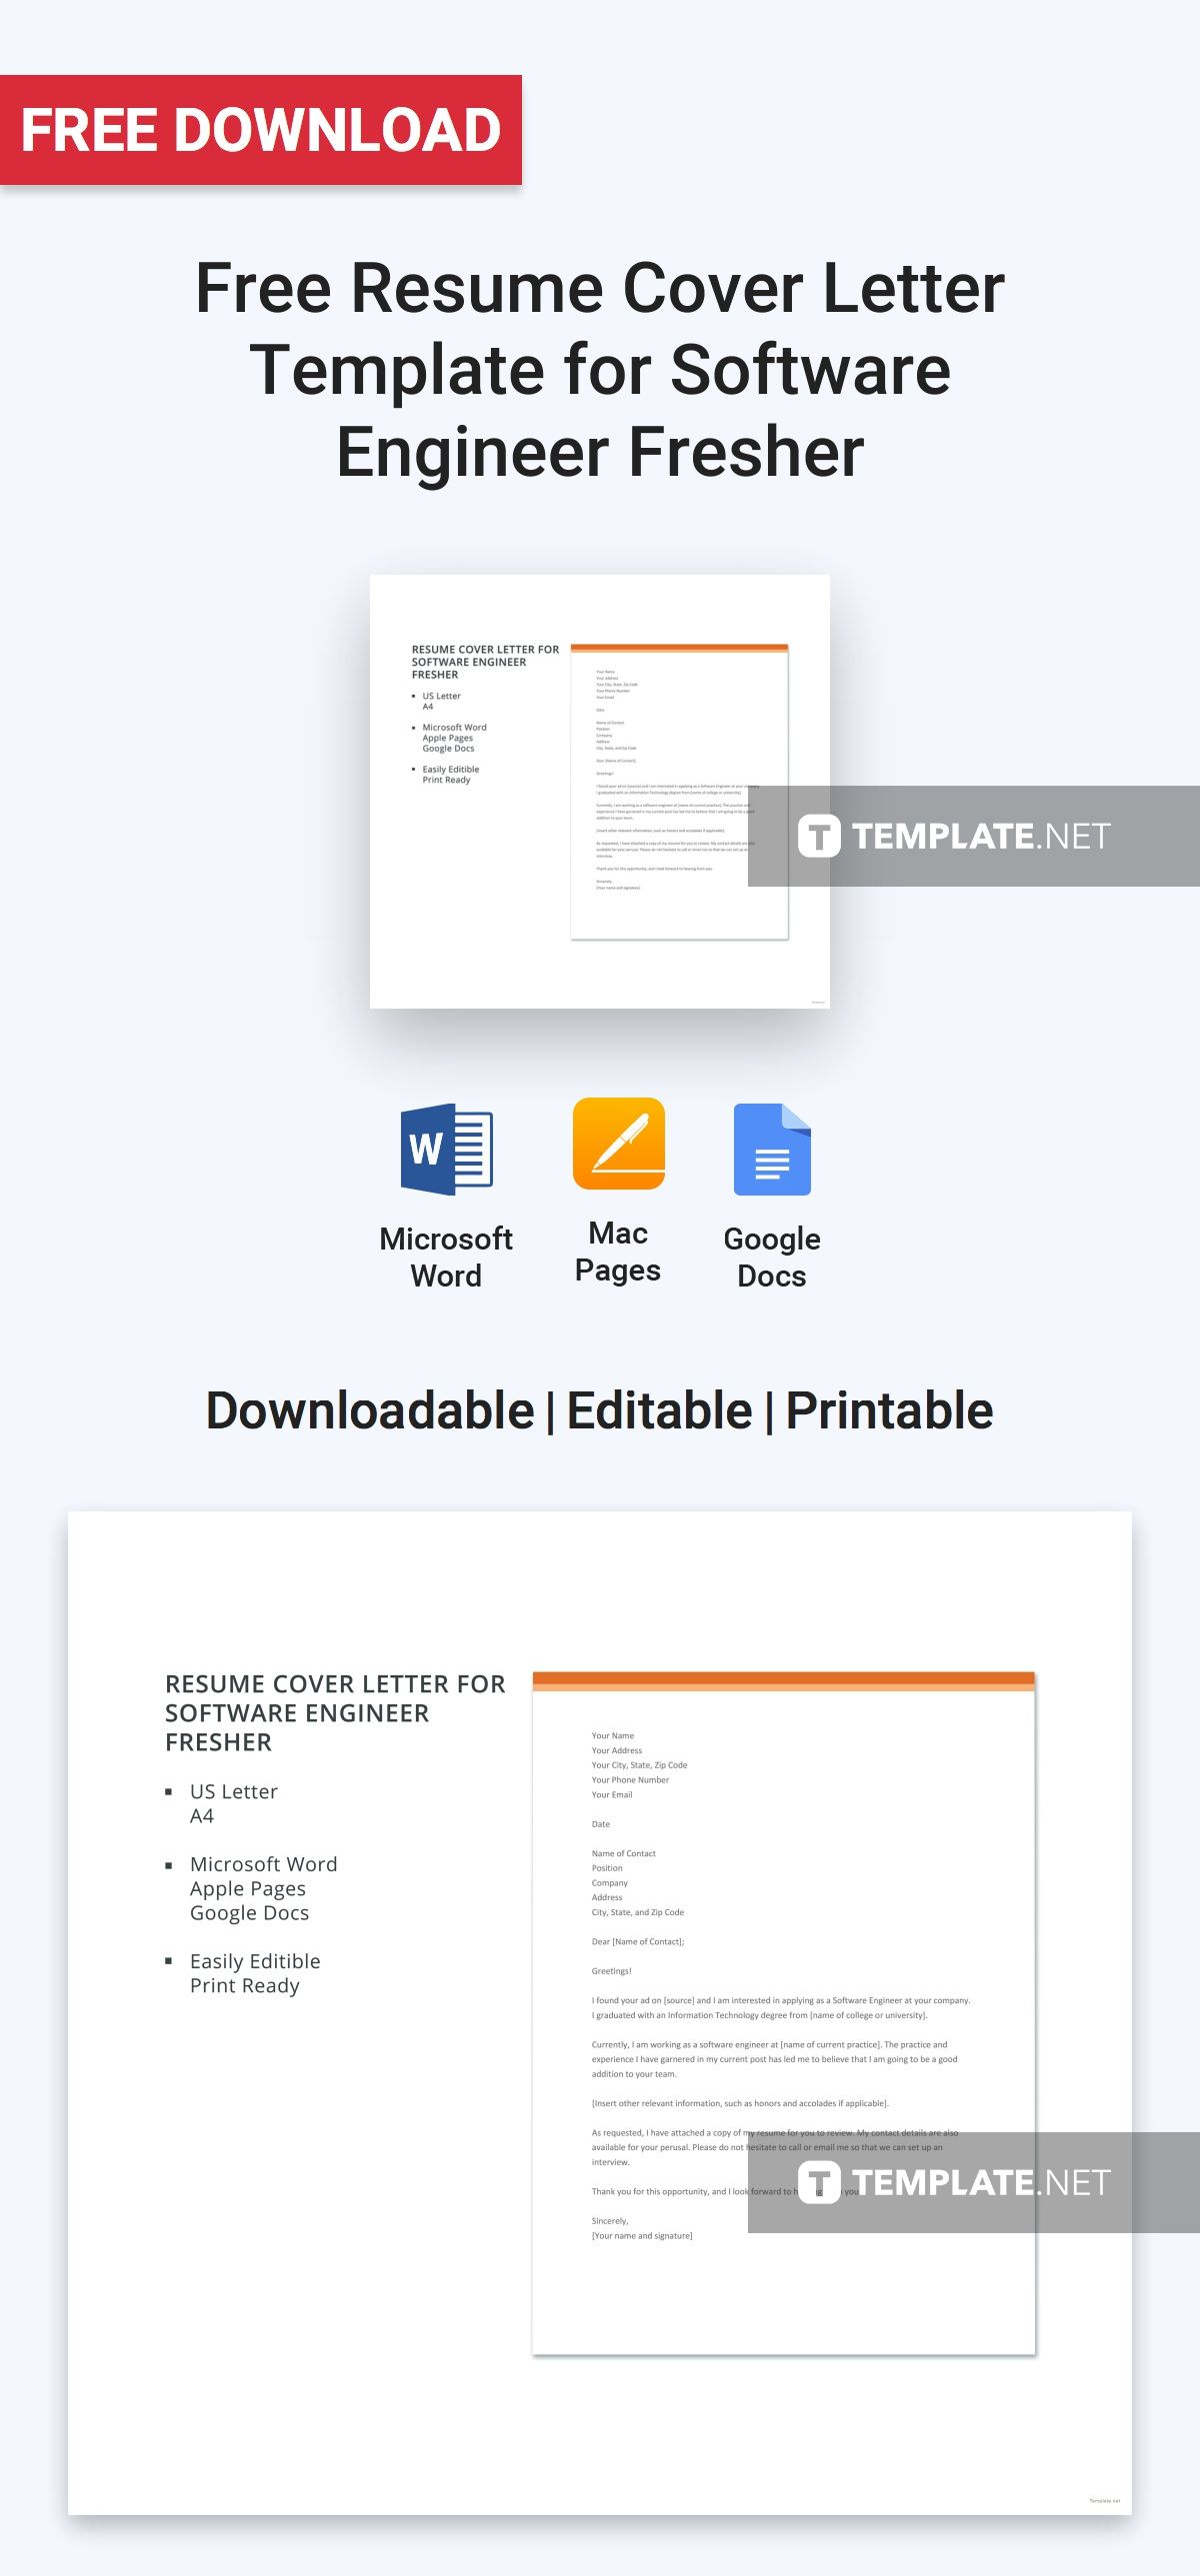 Free Resume Cover Letter Template for Software Engineer